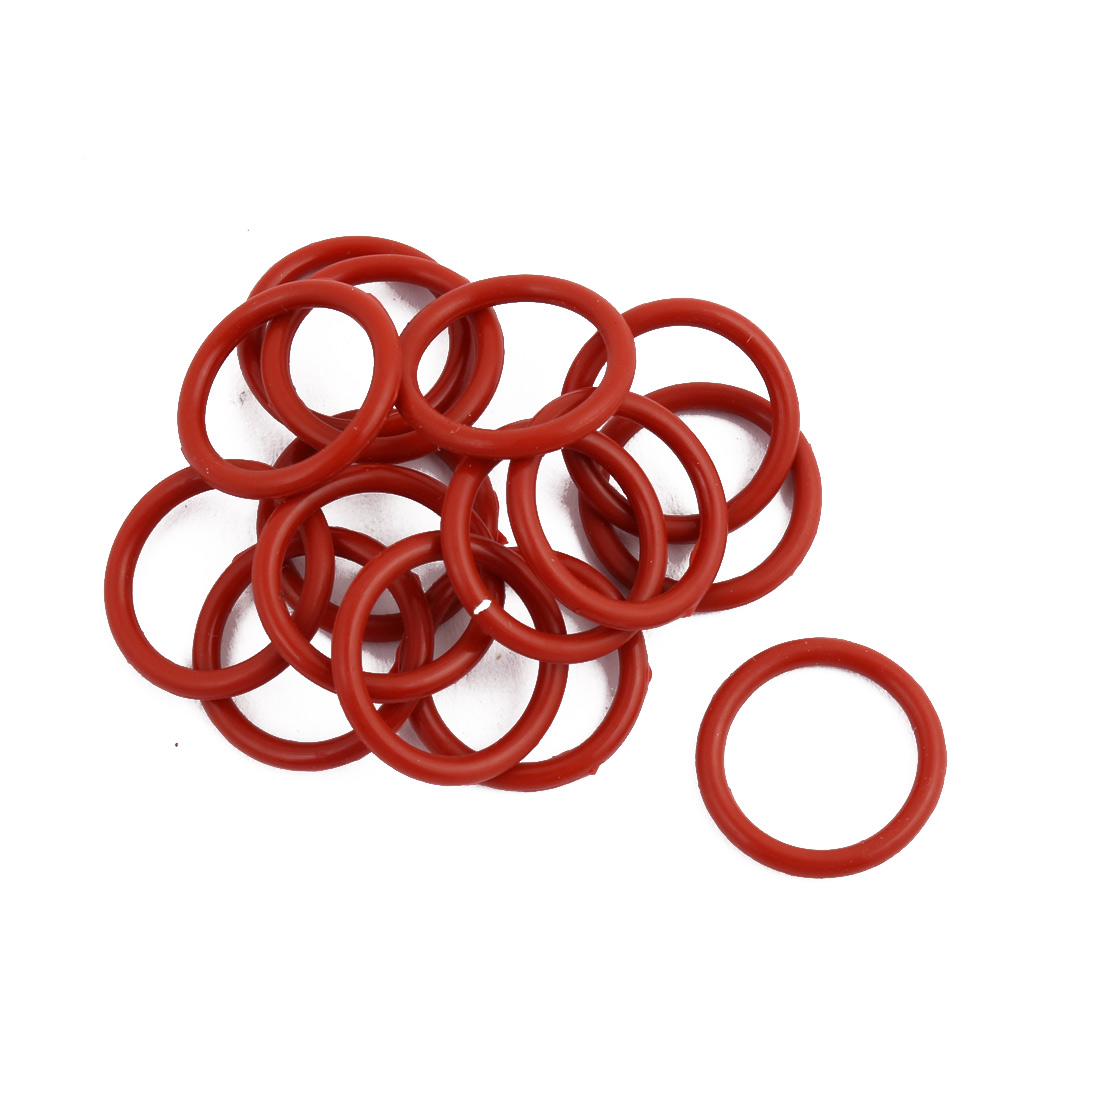 15pcs Red Round Nitrile Butadiene Rubber NBR O-Ring 17mm OD 1.9mm Width